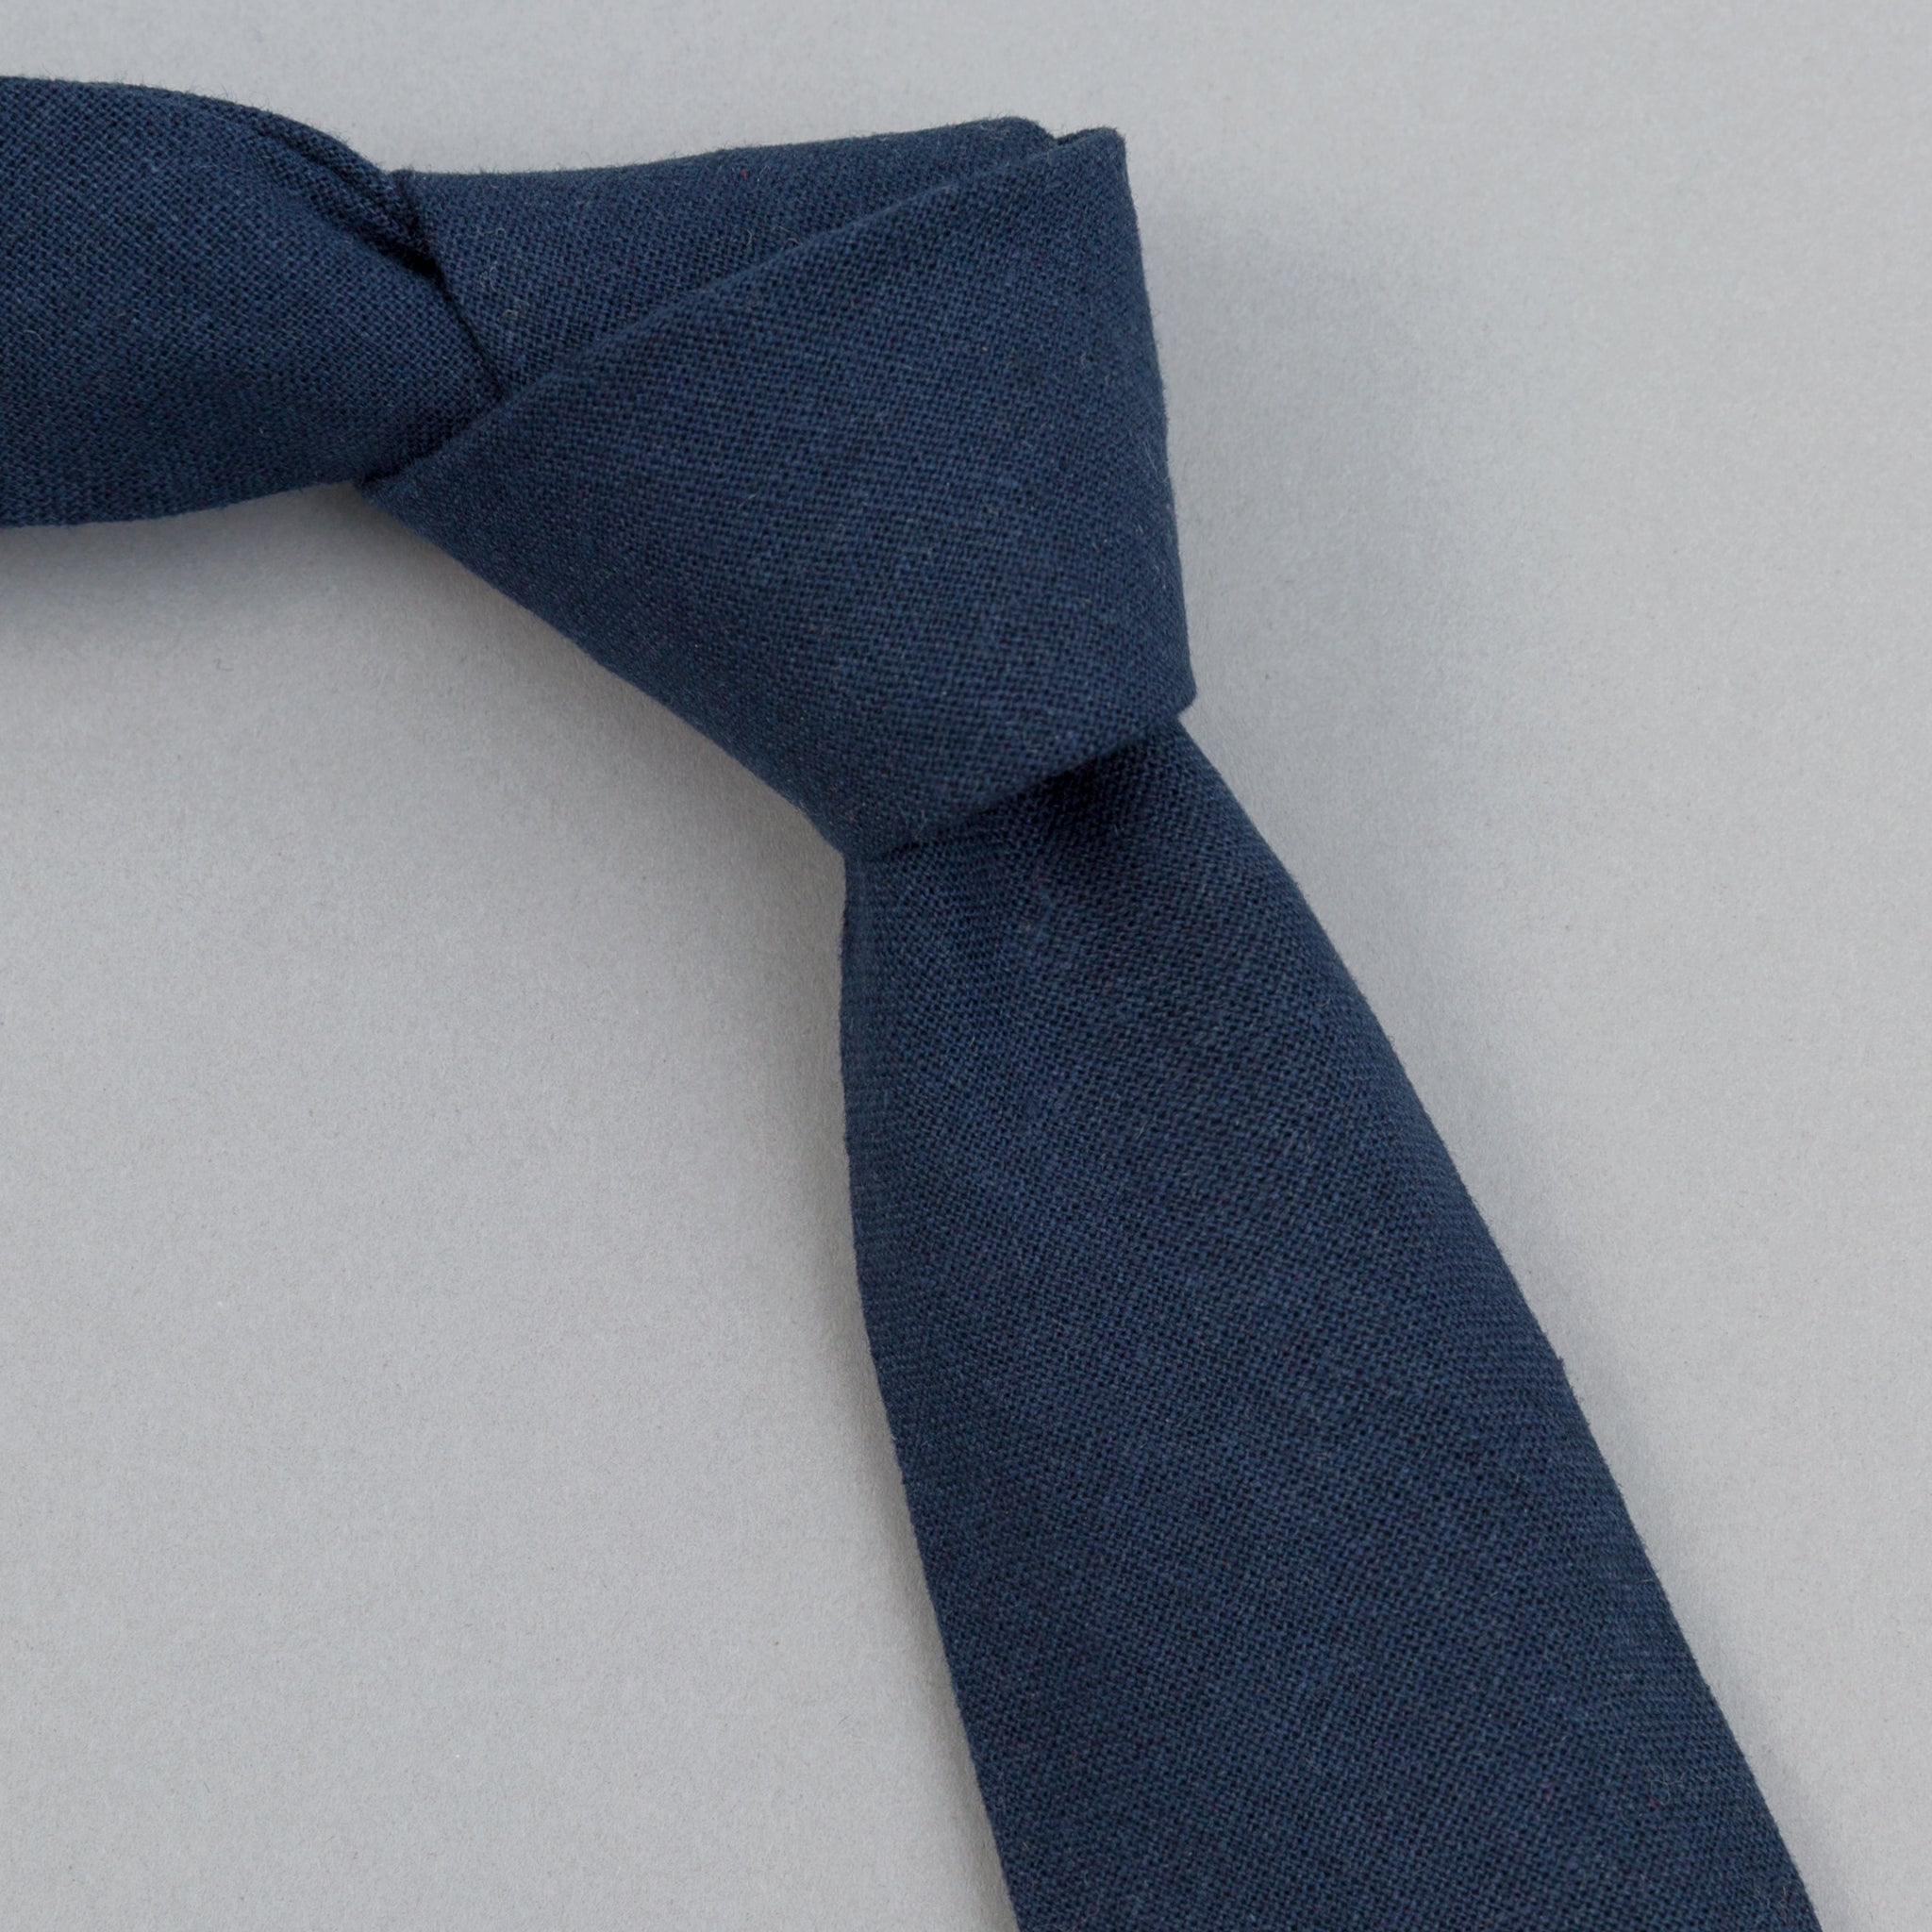 The Hill-Side - Linen / Cotton Oxford Tie, Navy - PT1-418 - image 1